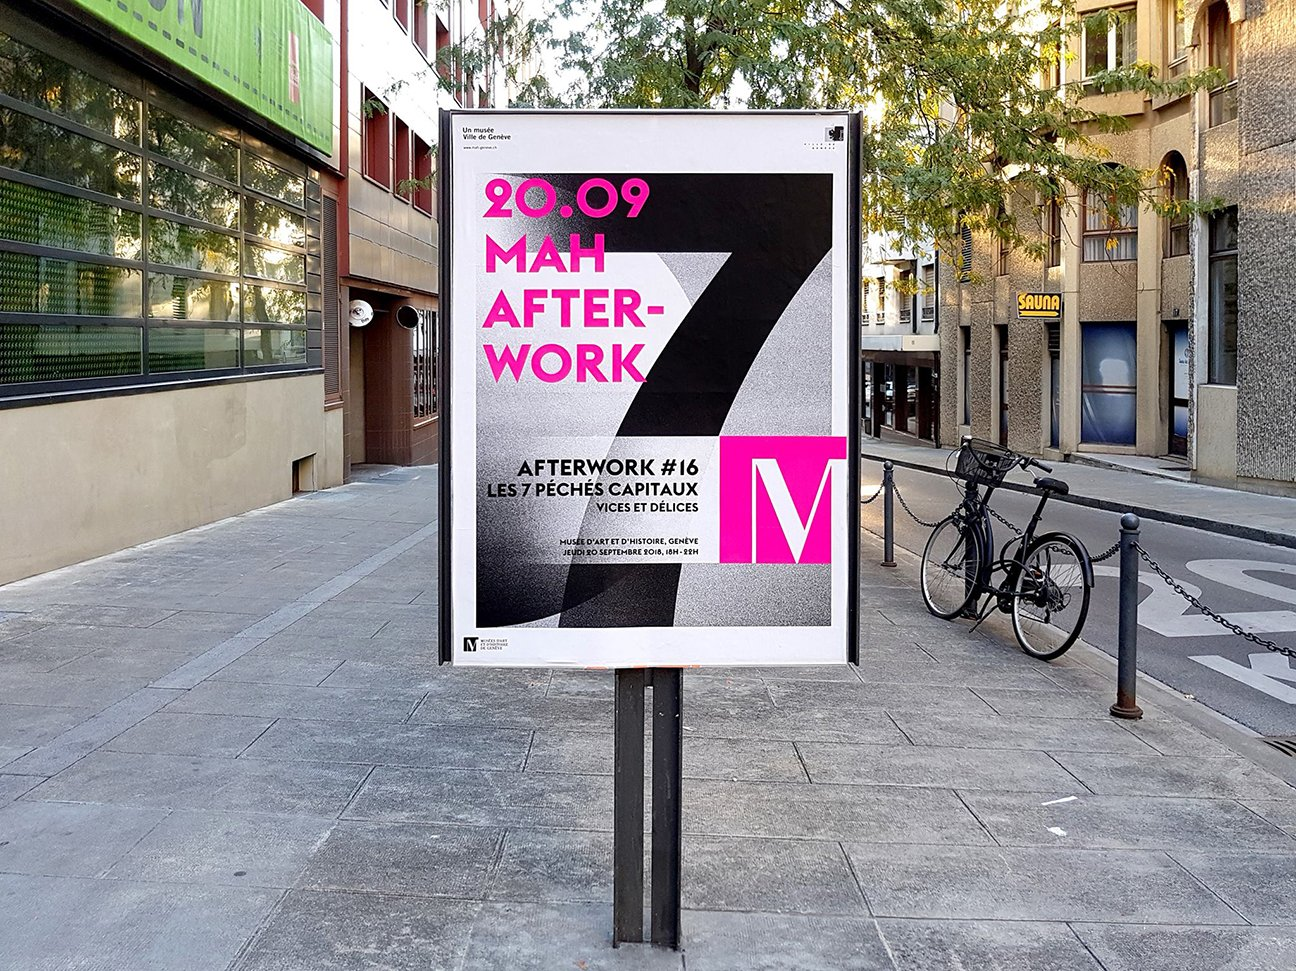 Fabien_cuffel_graphisme_typo_affiche_MAH_AFTERWORK_geneve-musee